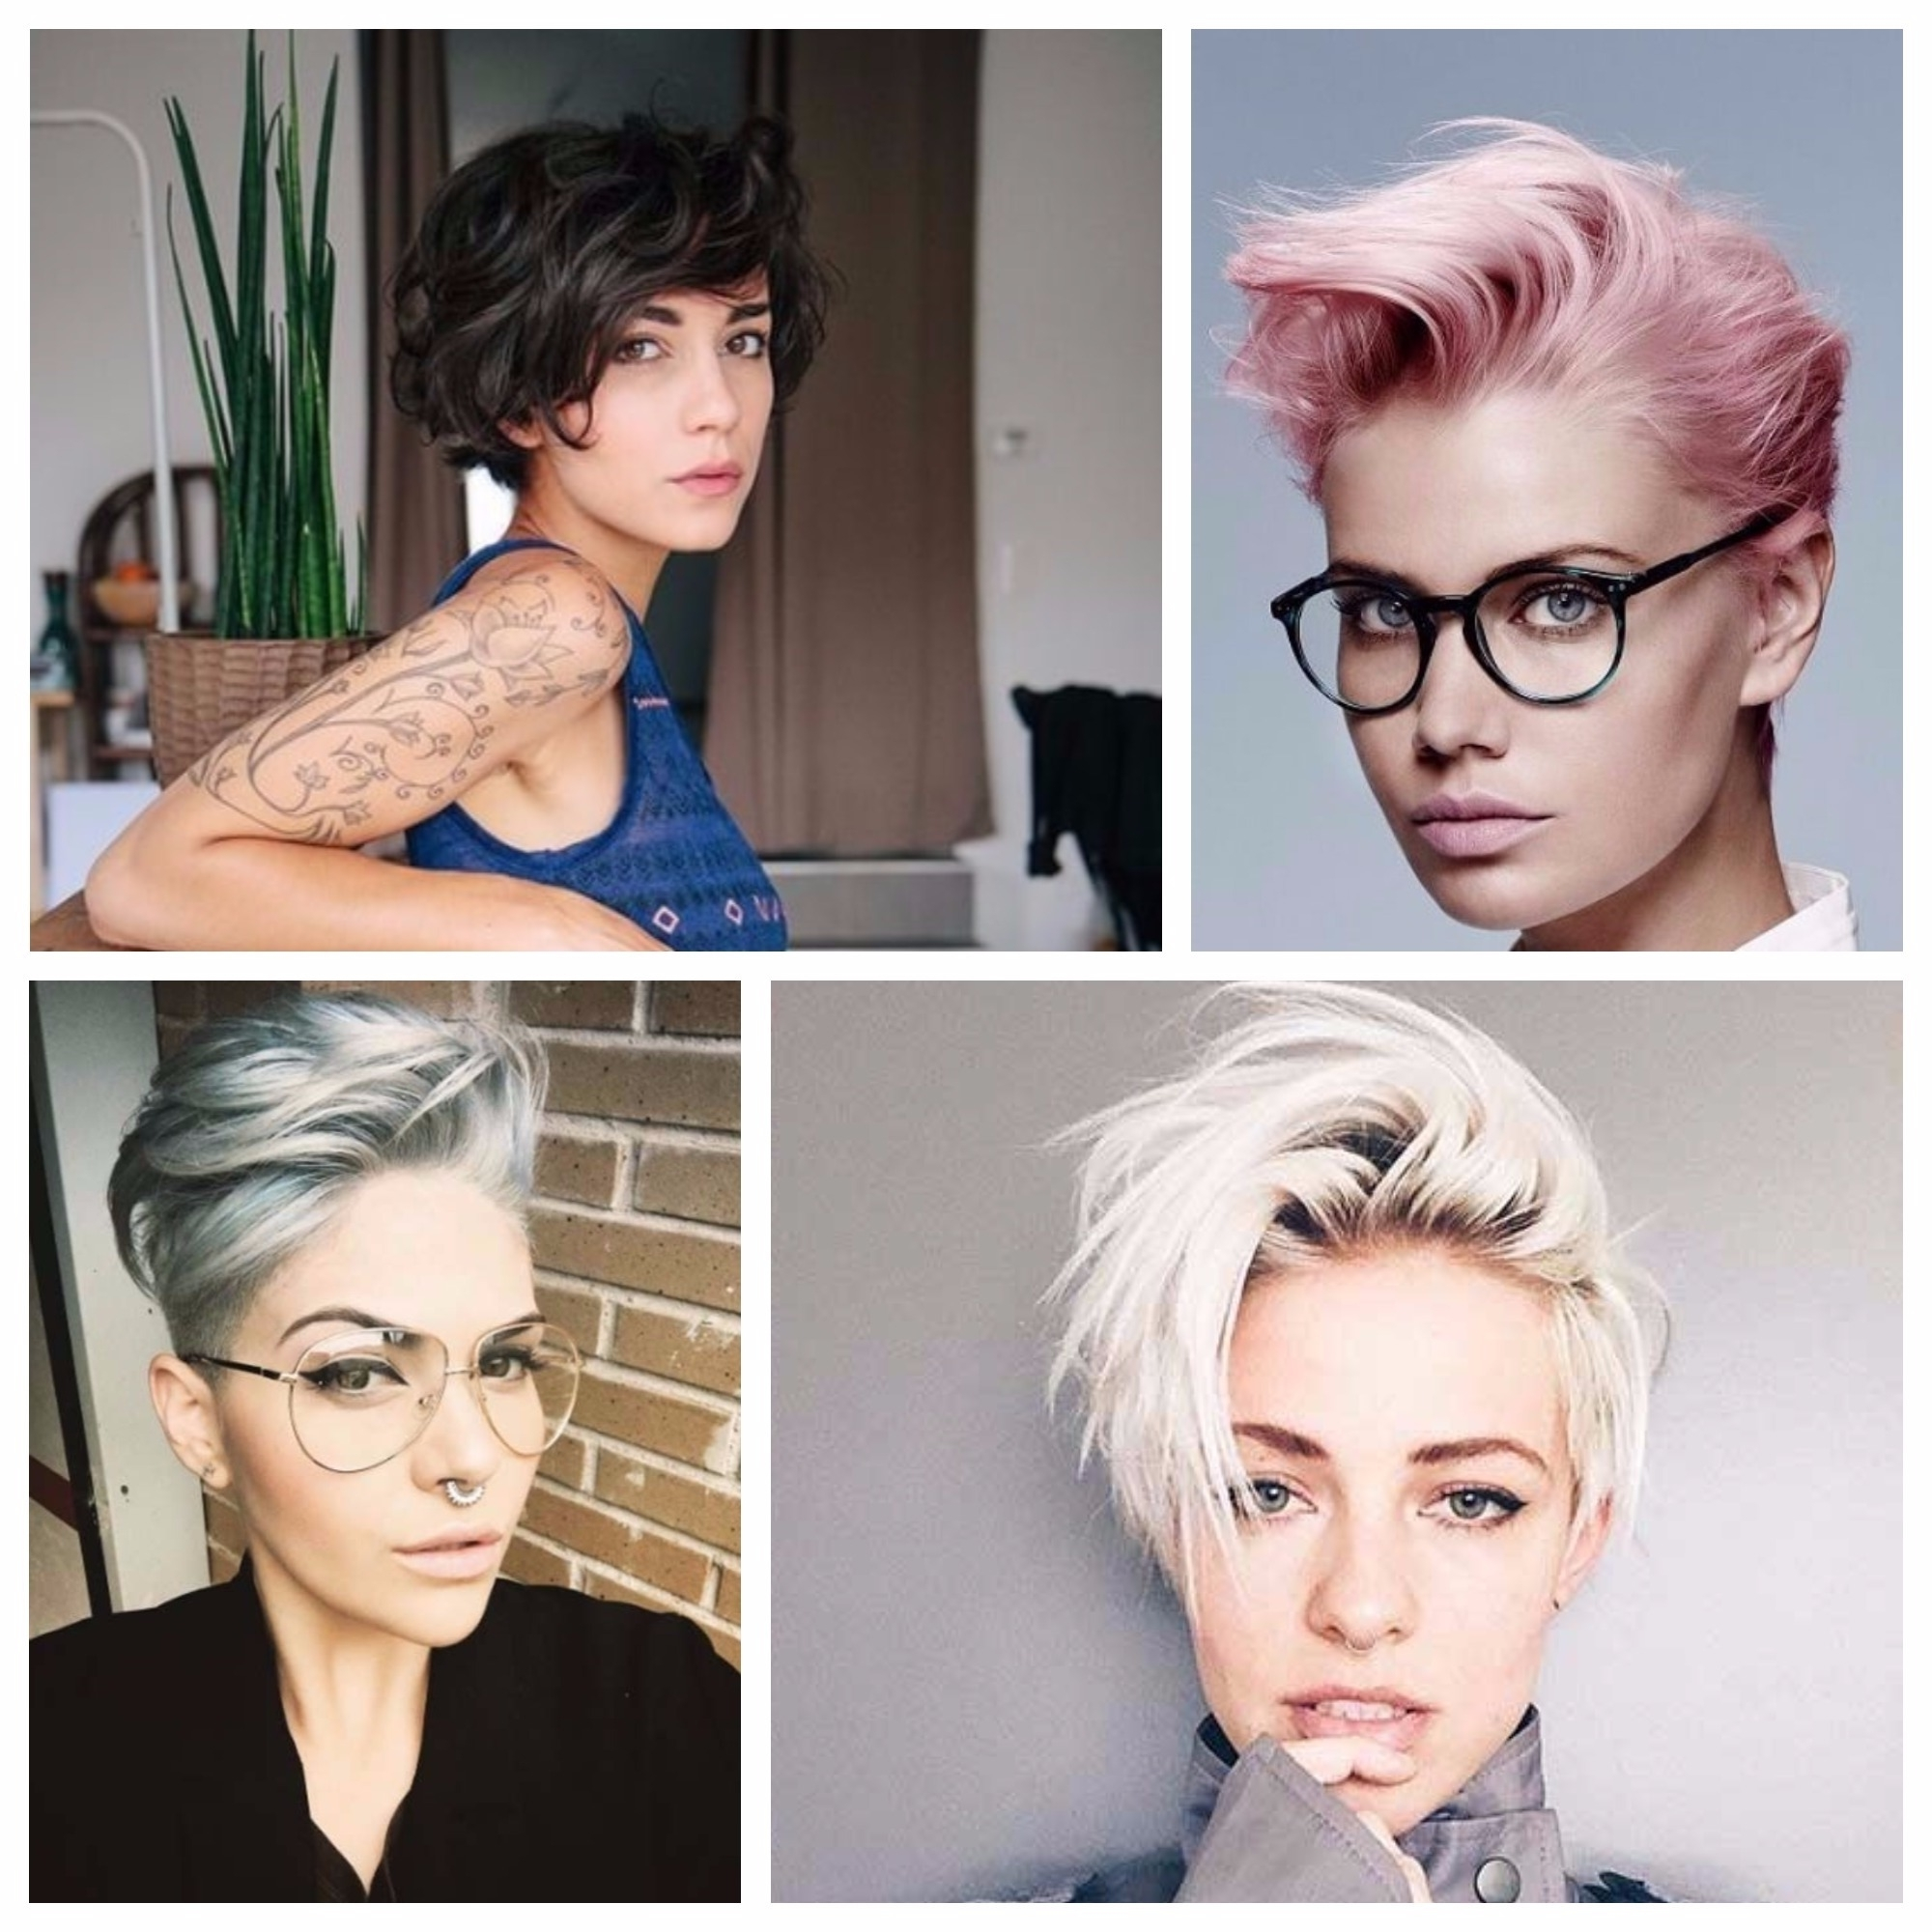 Adorable Long Pixie Hairstyles For 2017 | Hairstyles 2018 New With 2018 Long Pixie Hairstyles For Women (View 4 of 15)